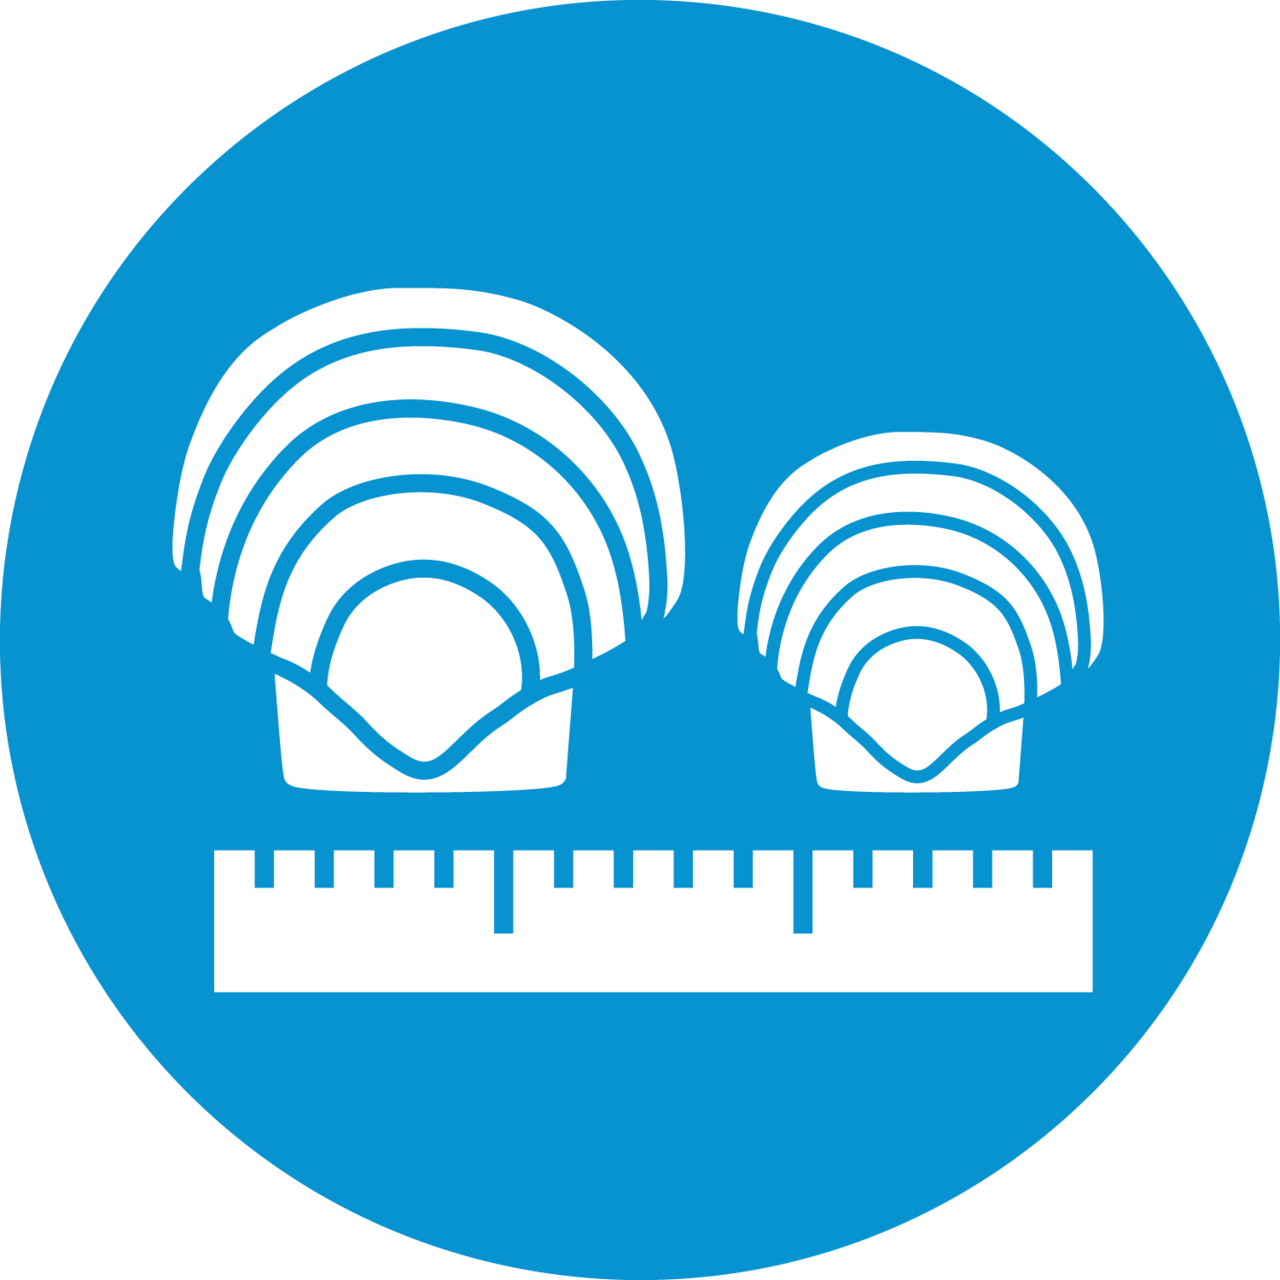 scallop shells and ruler